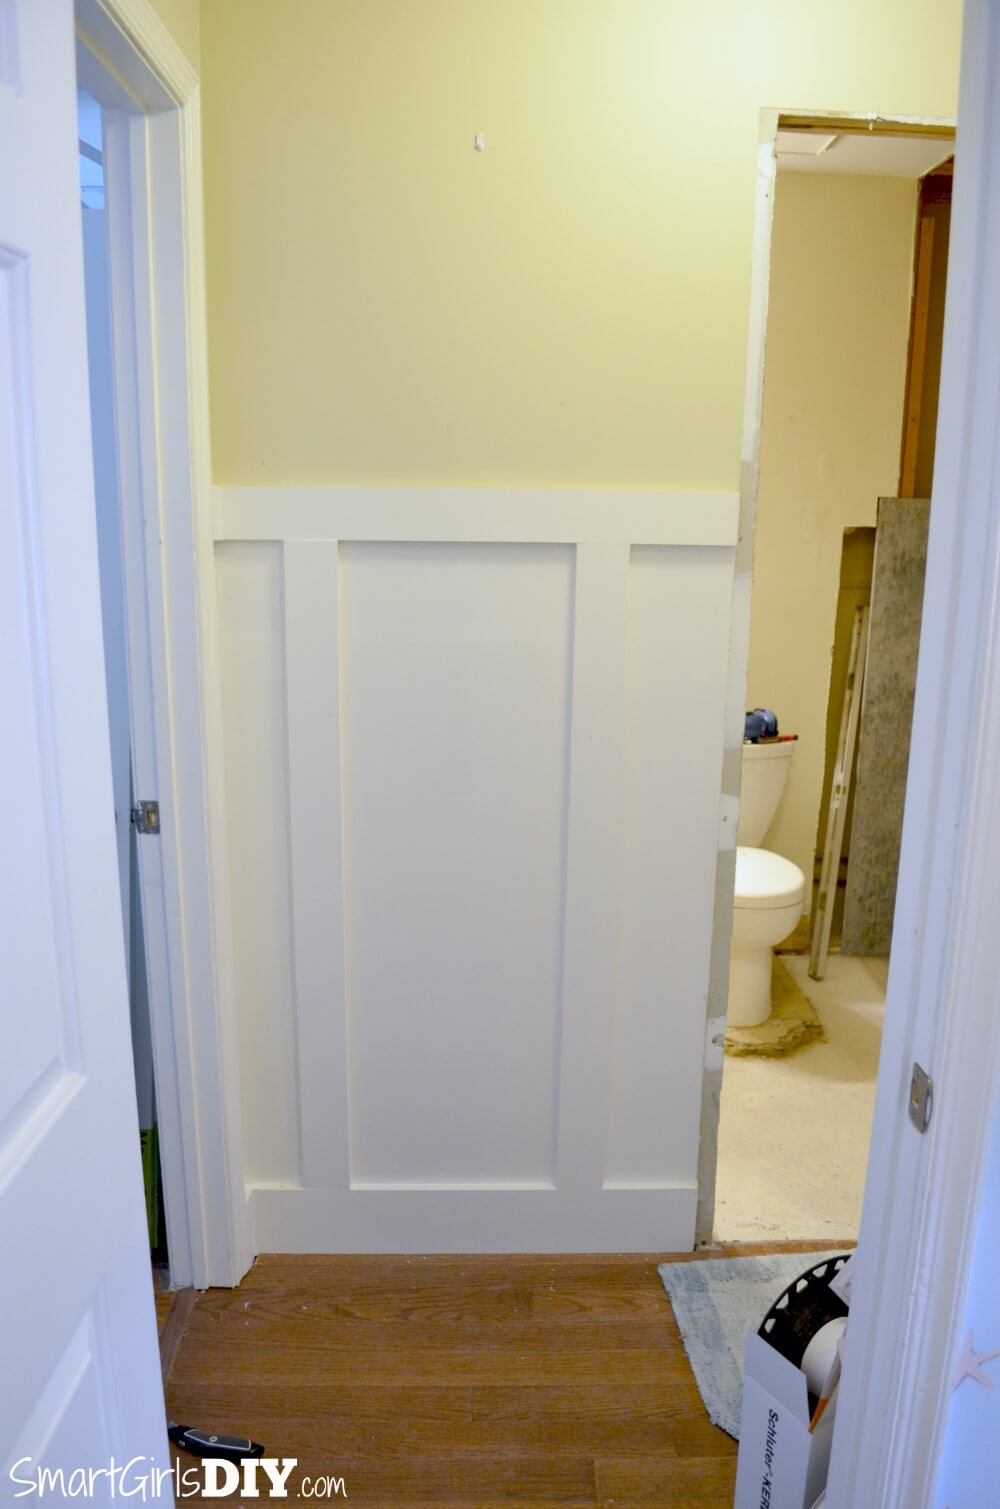 Installing Pocket Doors Bathroom : Guest bathroom how to install a pocket door johnson